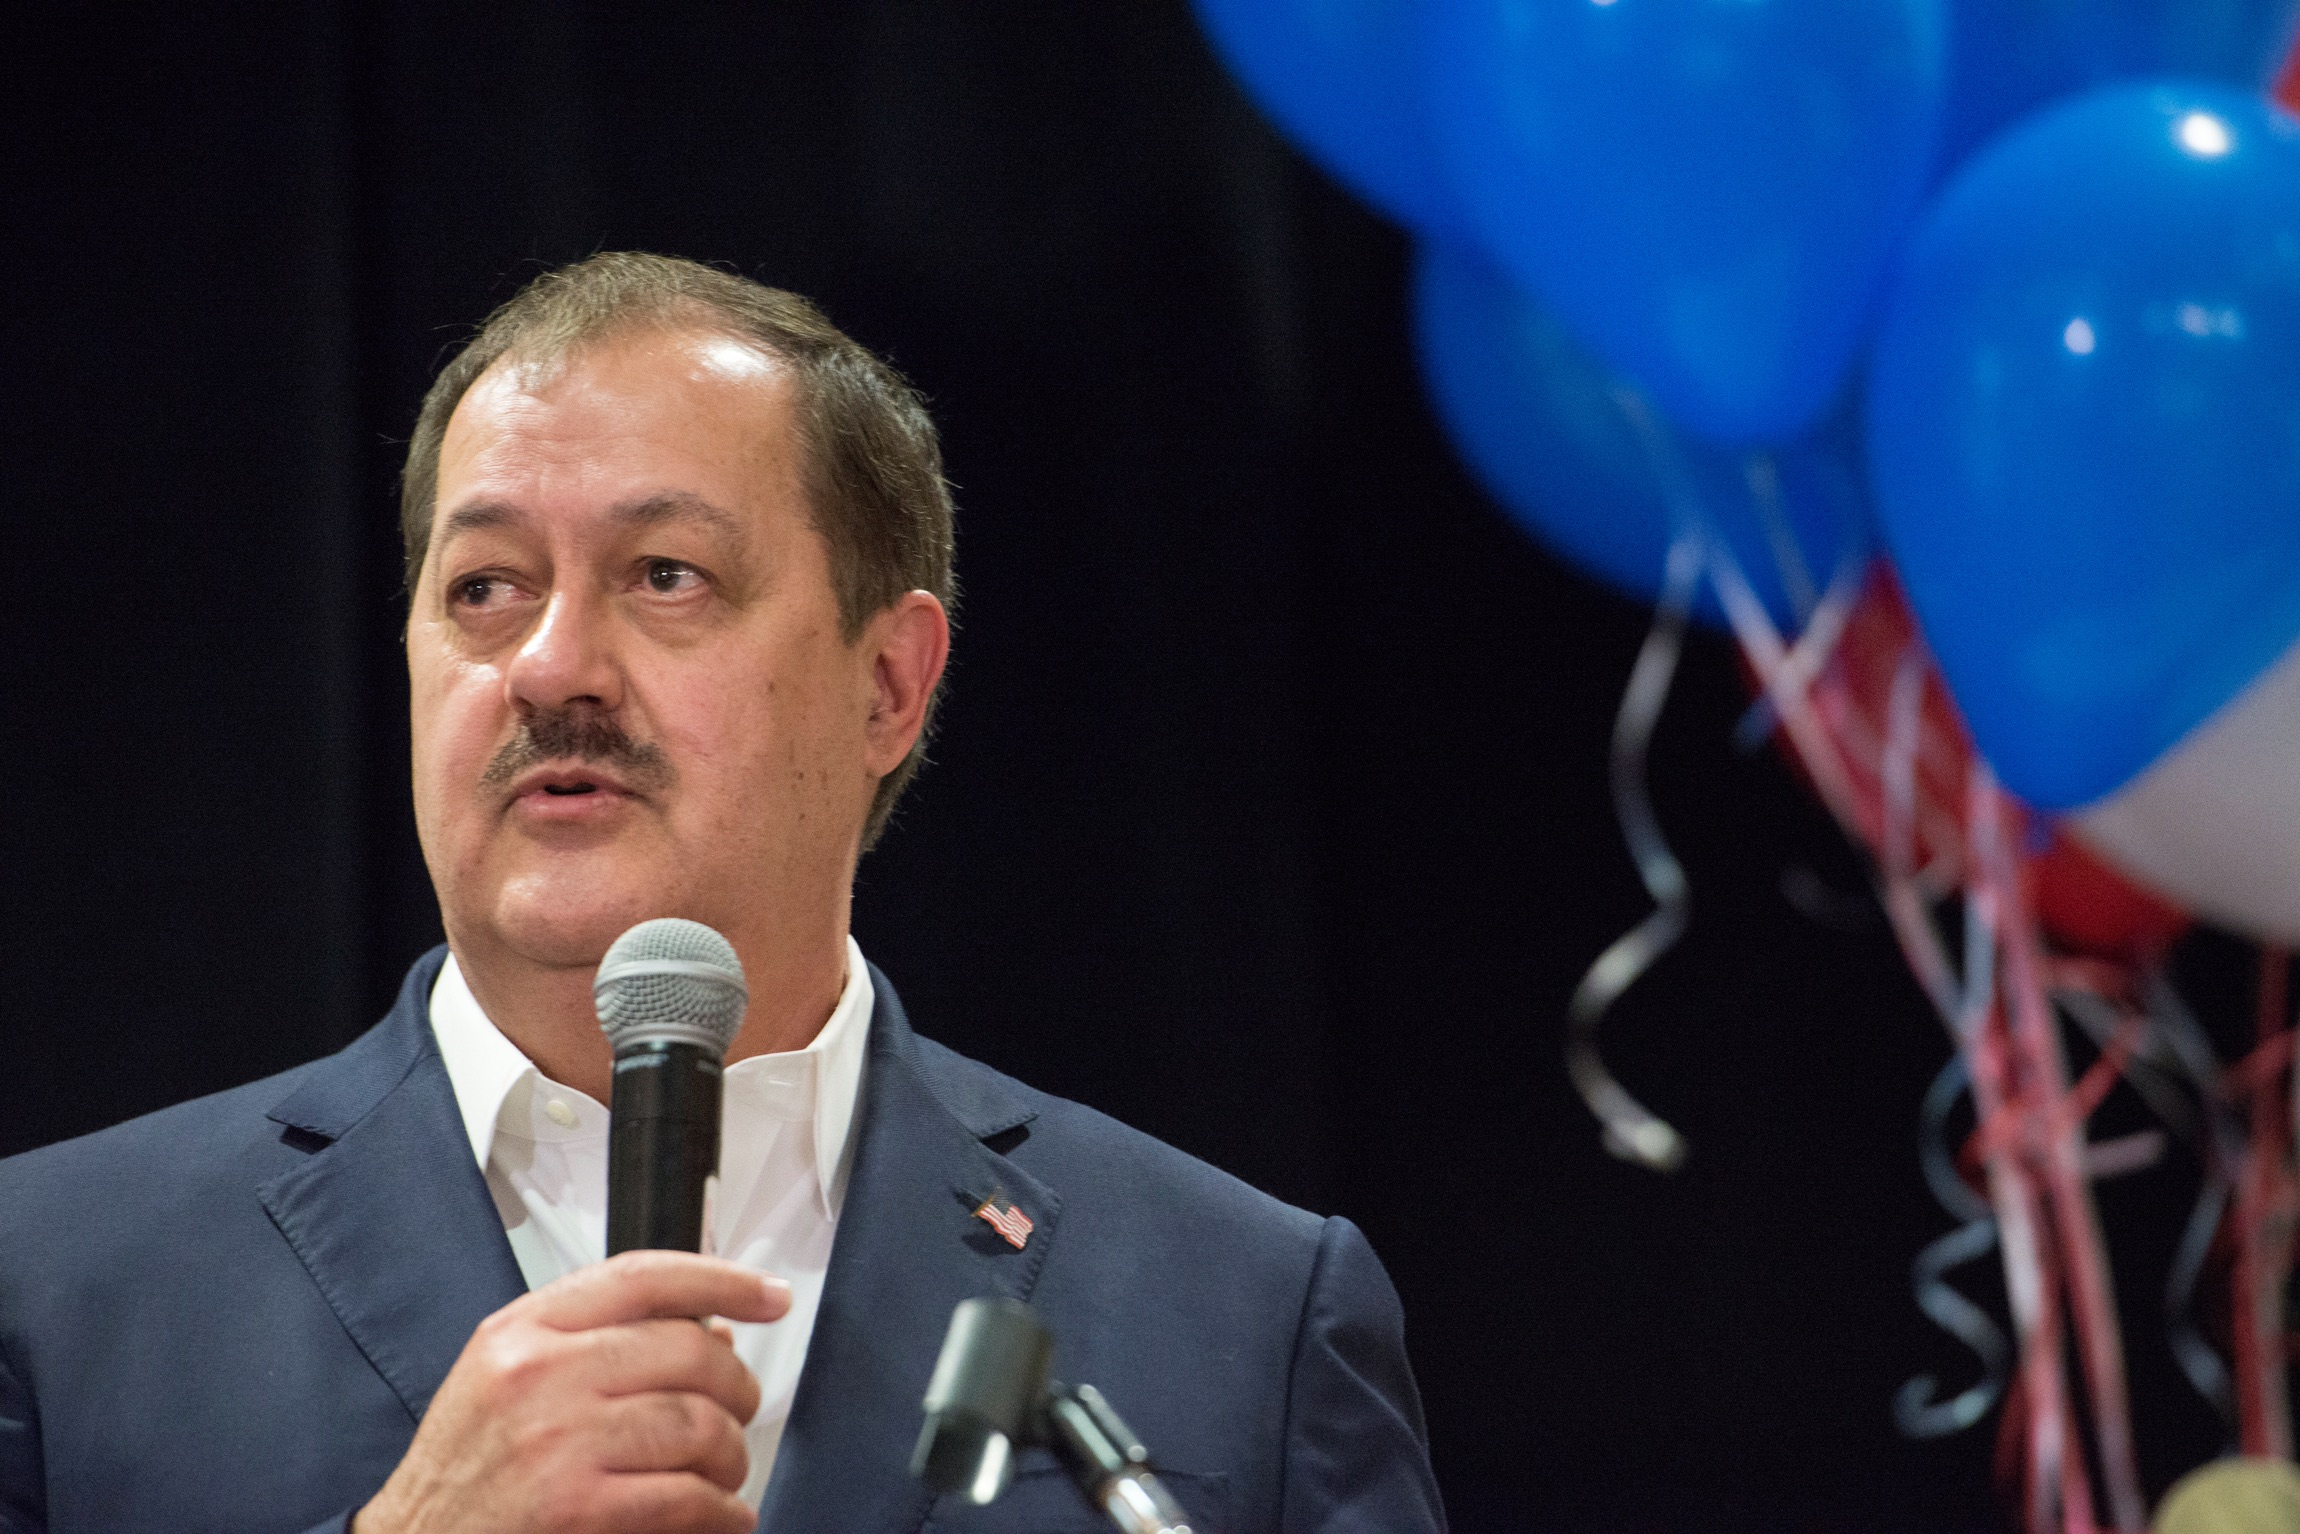 Republican U.S. Senate candidate Don Blankenship speaks to his supporters during the primary election in Charleston, West Virginia, U.S., May 8, 2018. REUTERS/Lexi Browning -